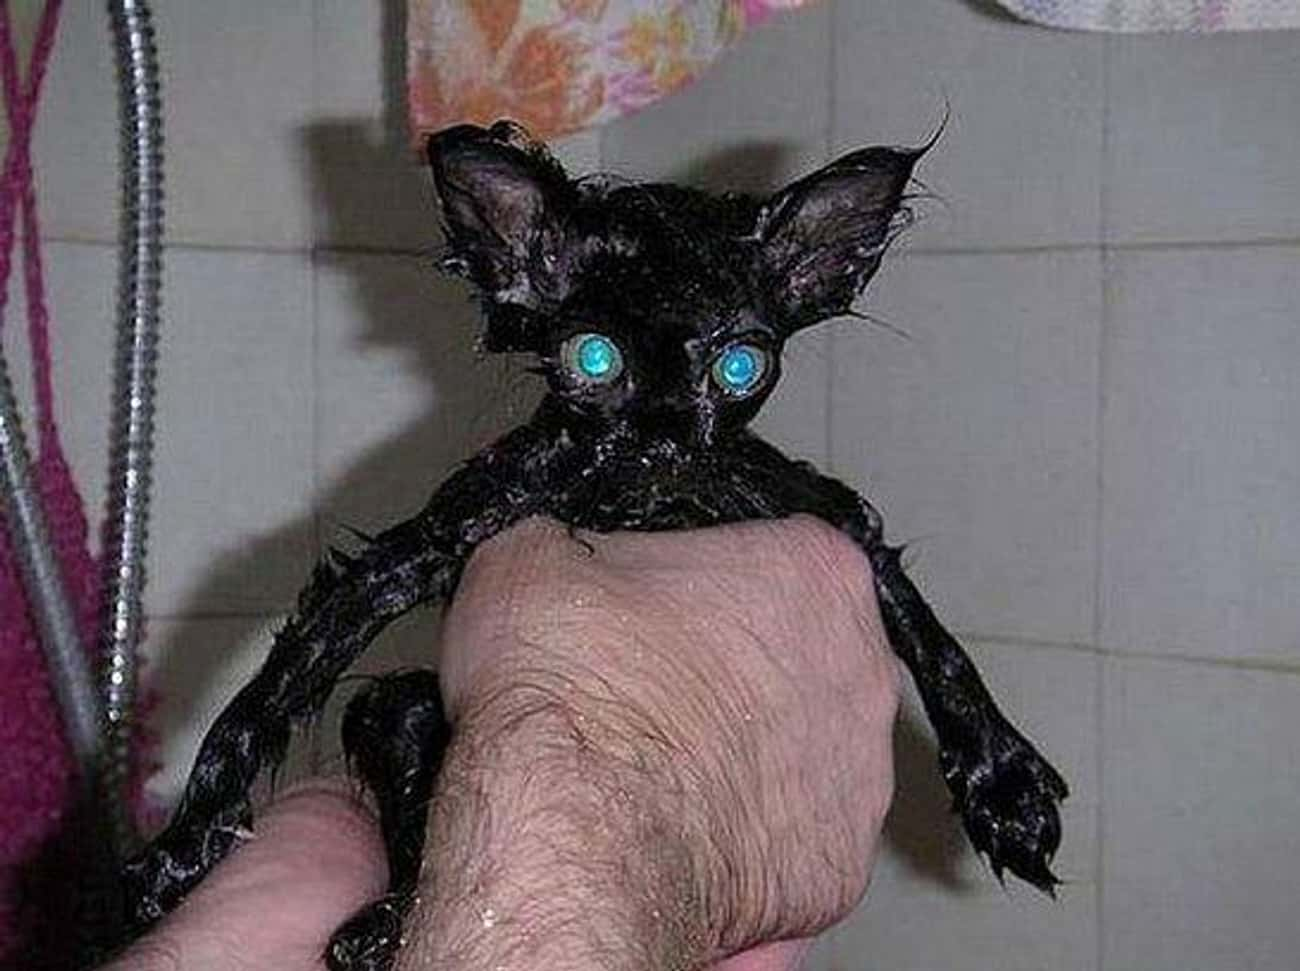 Loooook Into My Eyeeeees is listed (or ranked) 1 on the list 19 Cute Animals That Look Scary When They're Soaking Wet